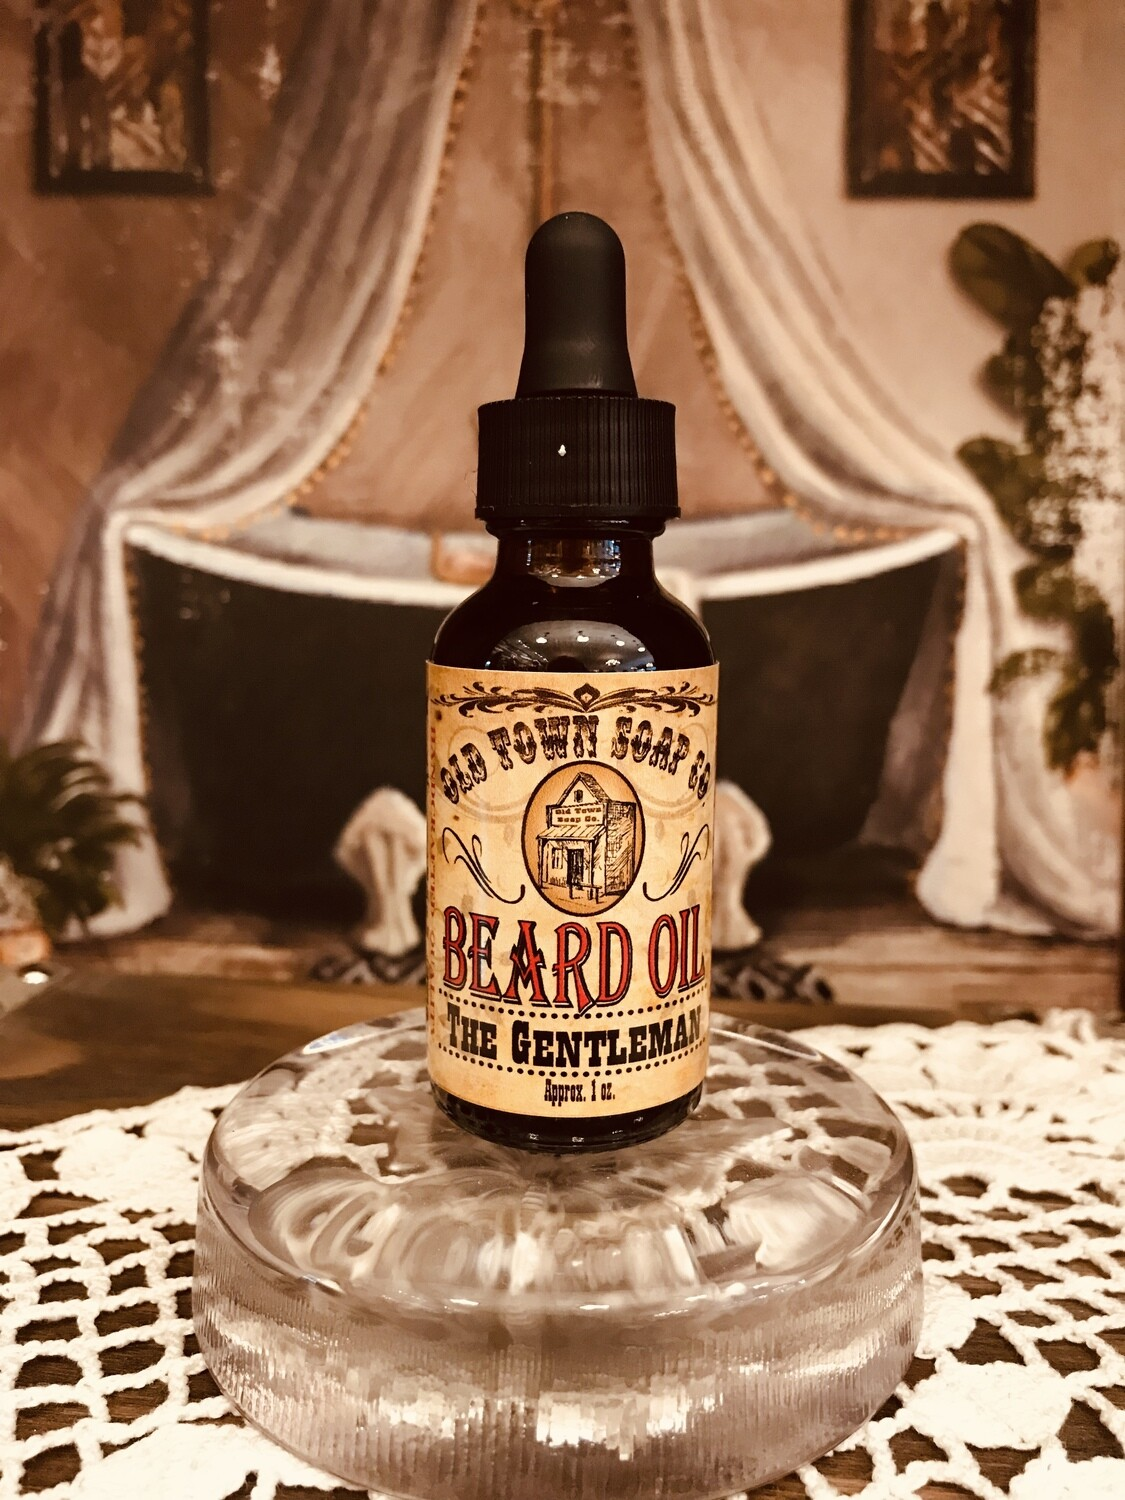 The Gentleman - Beard Oil